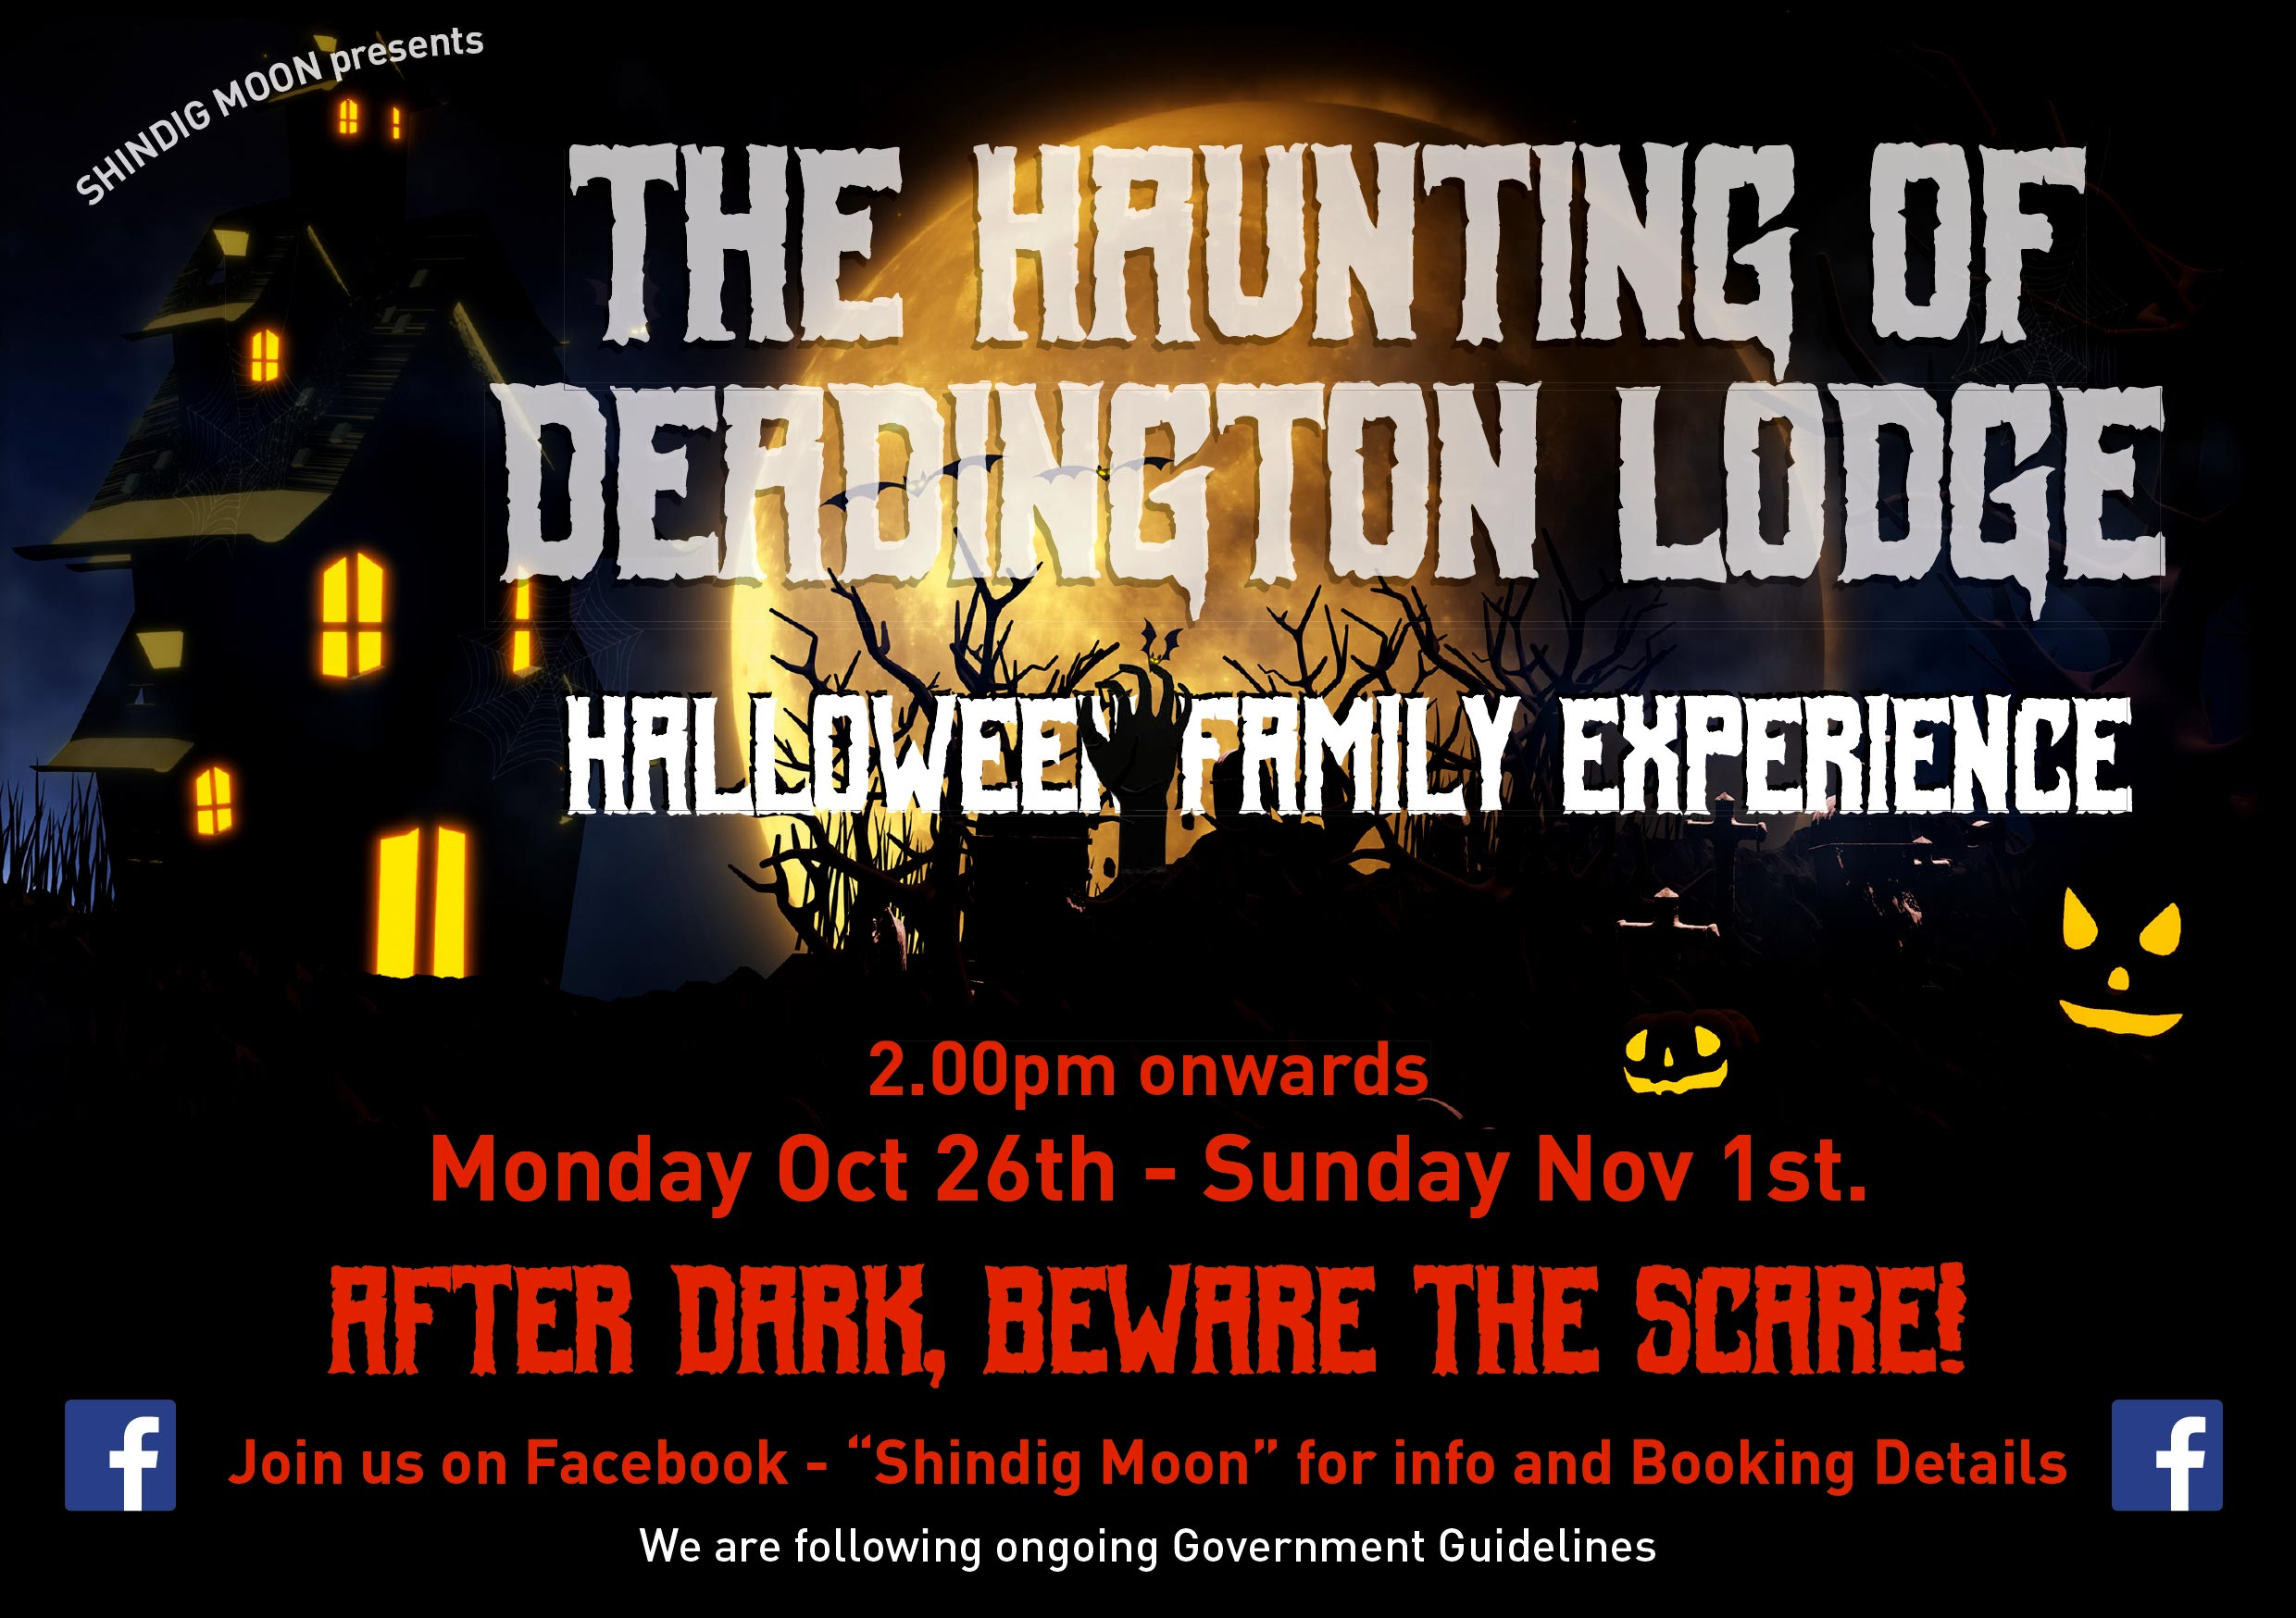 The Haunting of Deadington Lodge Thursday 29th to Saturday 1st November